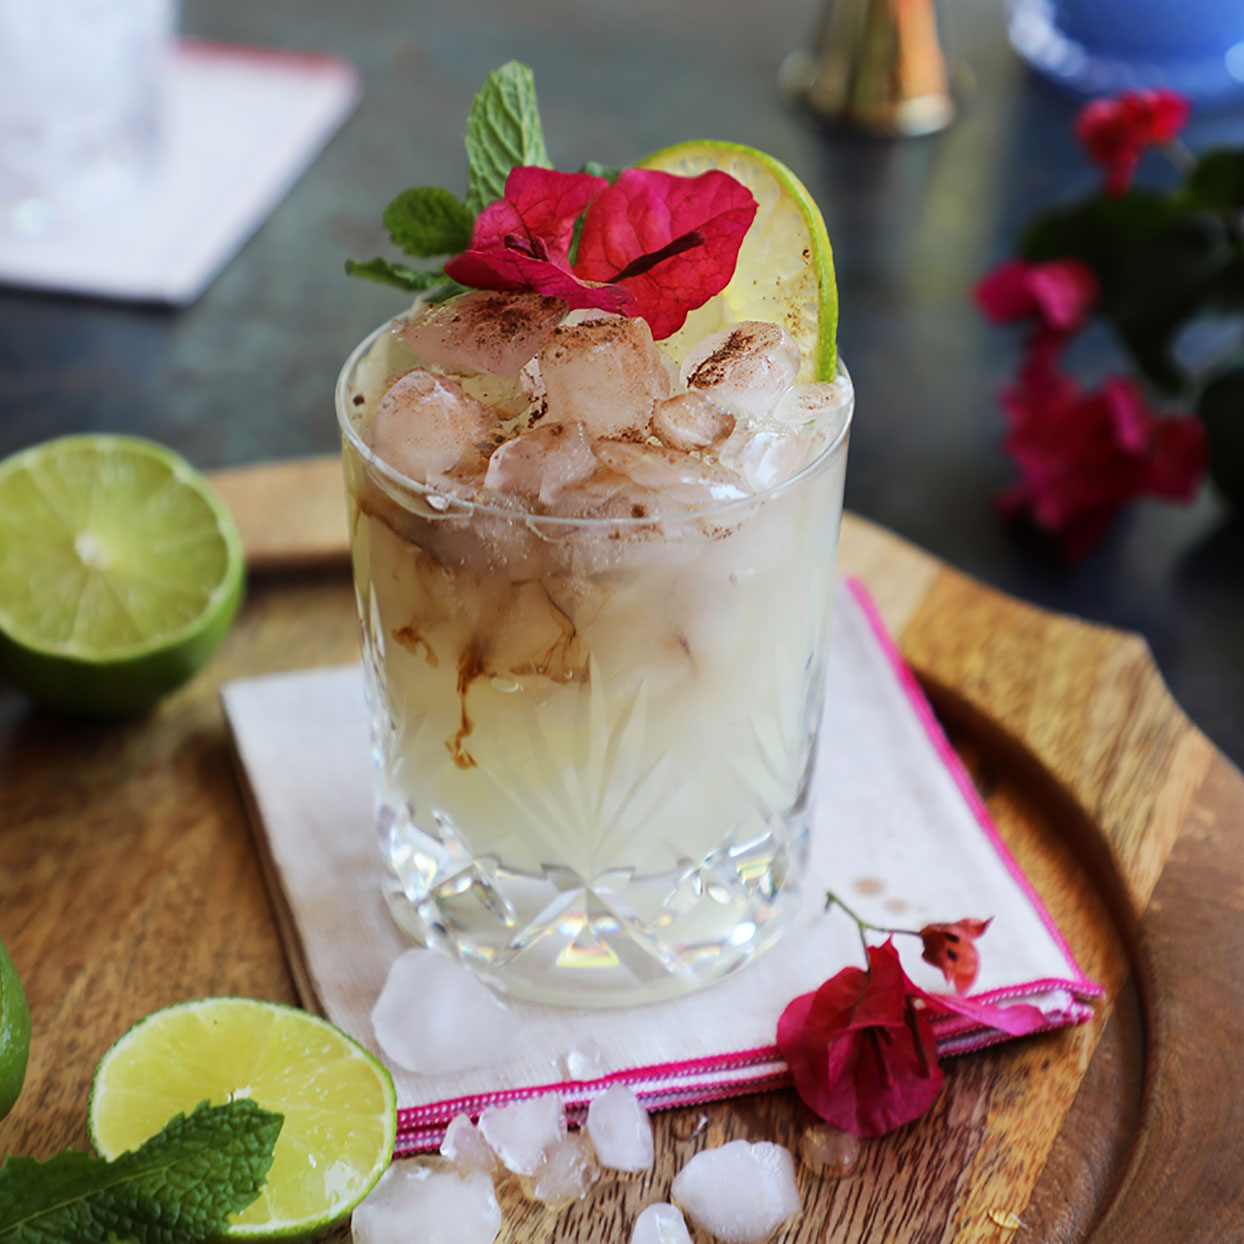 A traditional mai tai is an easy-to-make cocktail made up of two kinds of rum, orange liqueur, lime juice and almond syrup. If you don't happen to have all those goodies just hanging out in your kitchen cupboards, we'll show you how to make a slight variation that is just as delicious. Source: EatingWell.com, May 2020